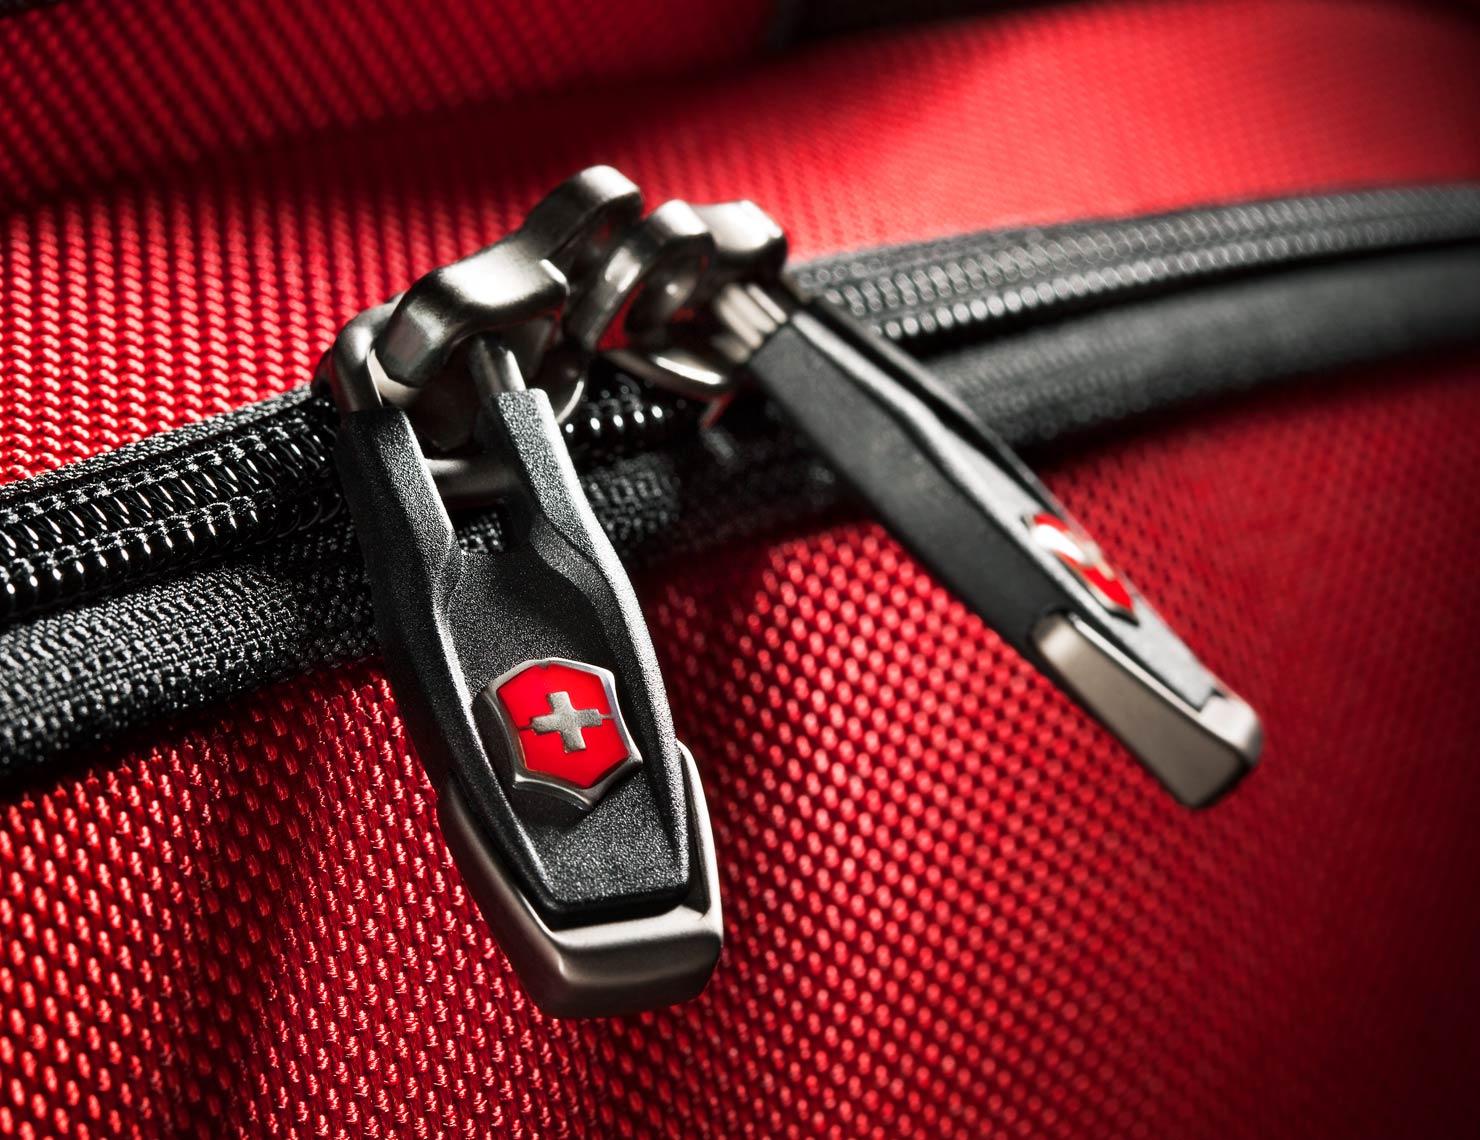 Product Photography Gear Victoronix Luggage Travel Beauty Detail Zipper Pull Red Metal Chicago